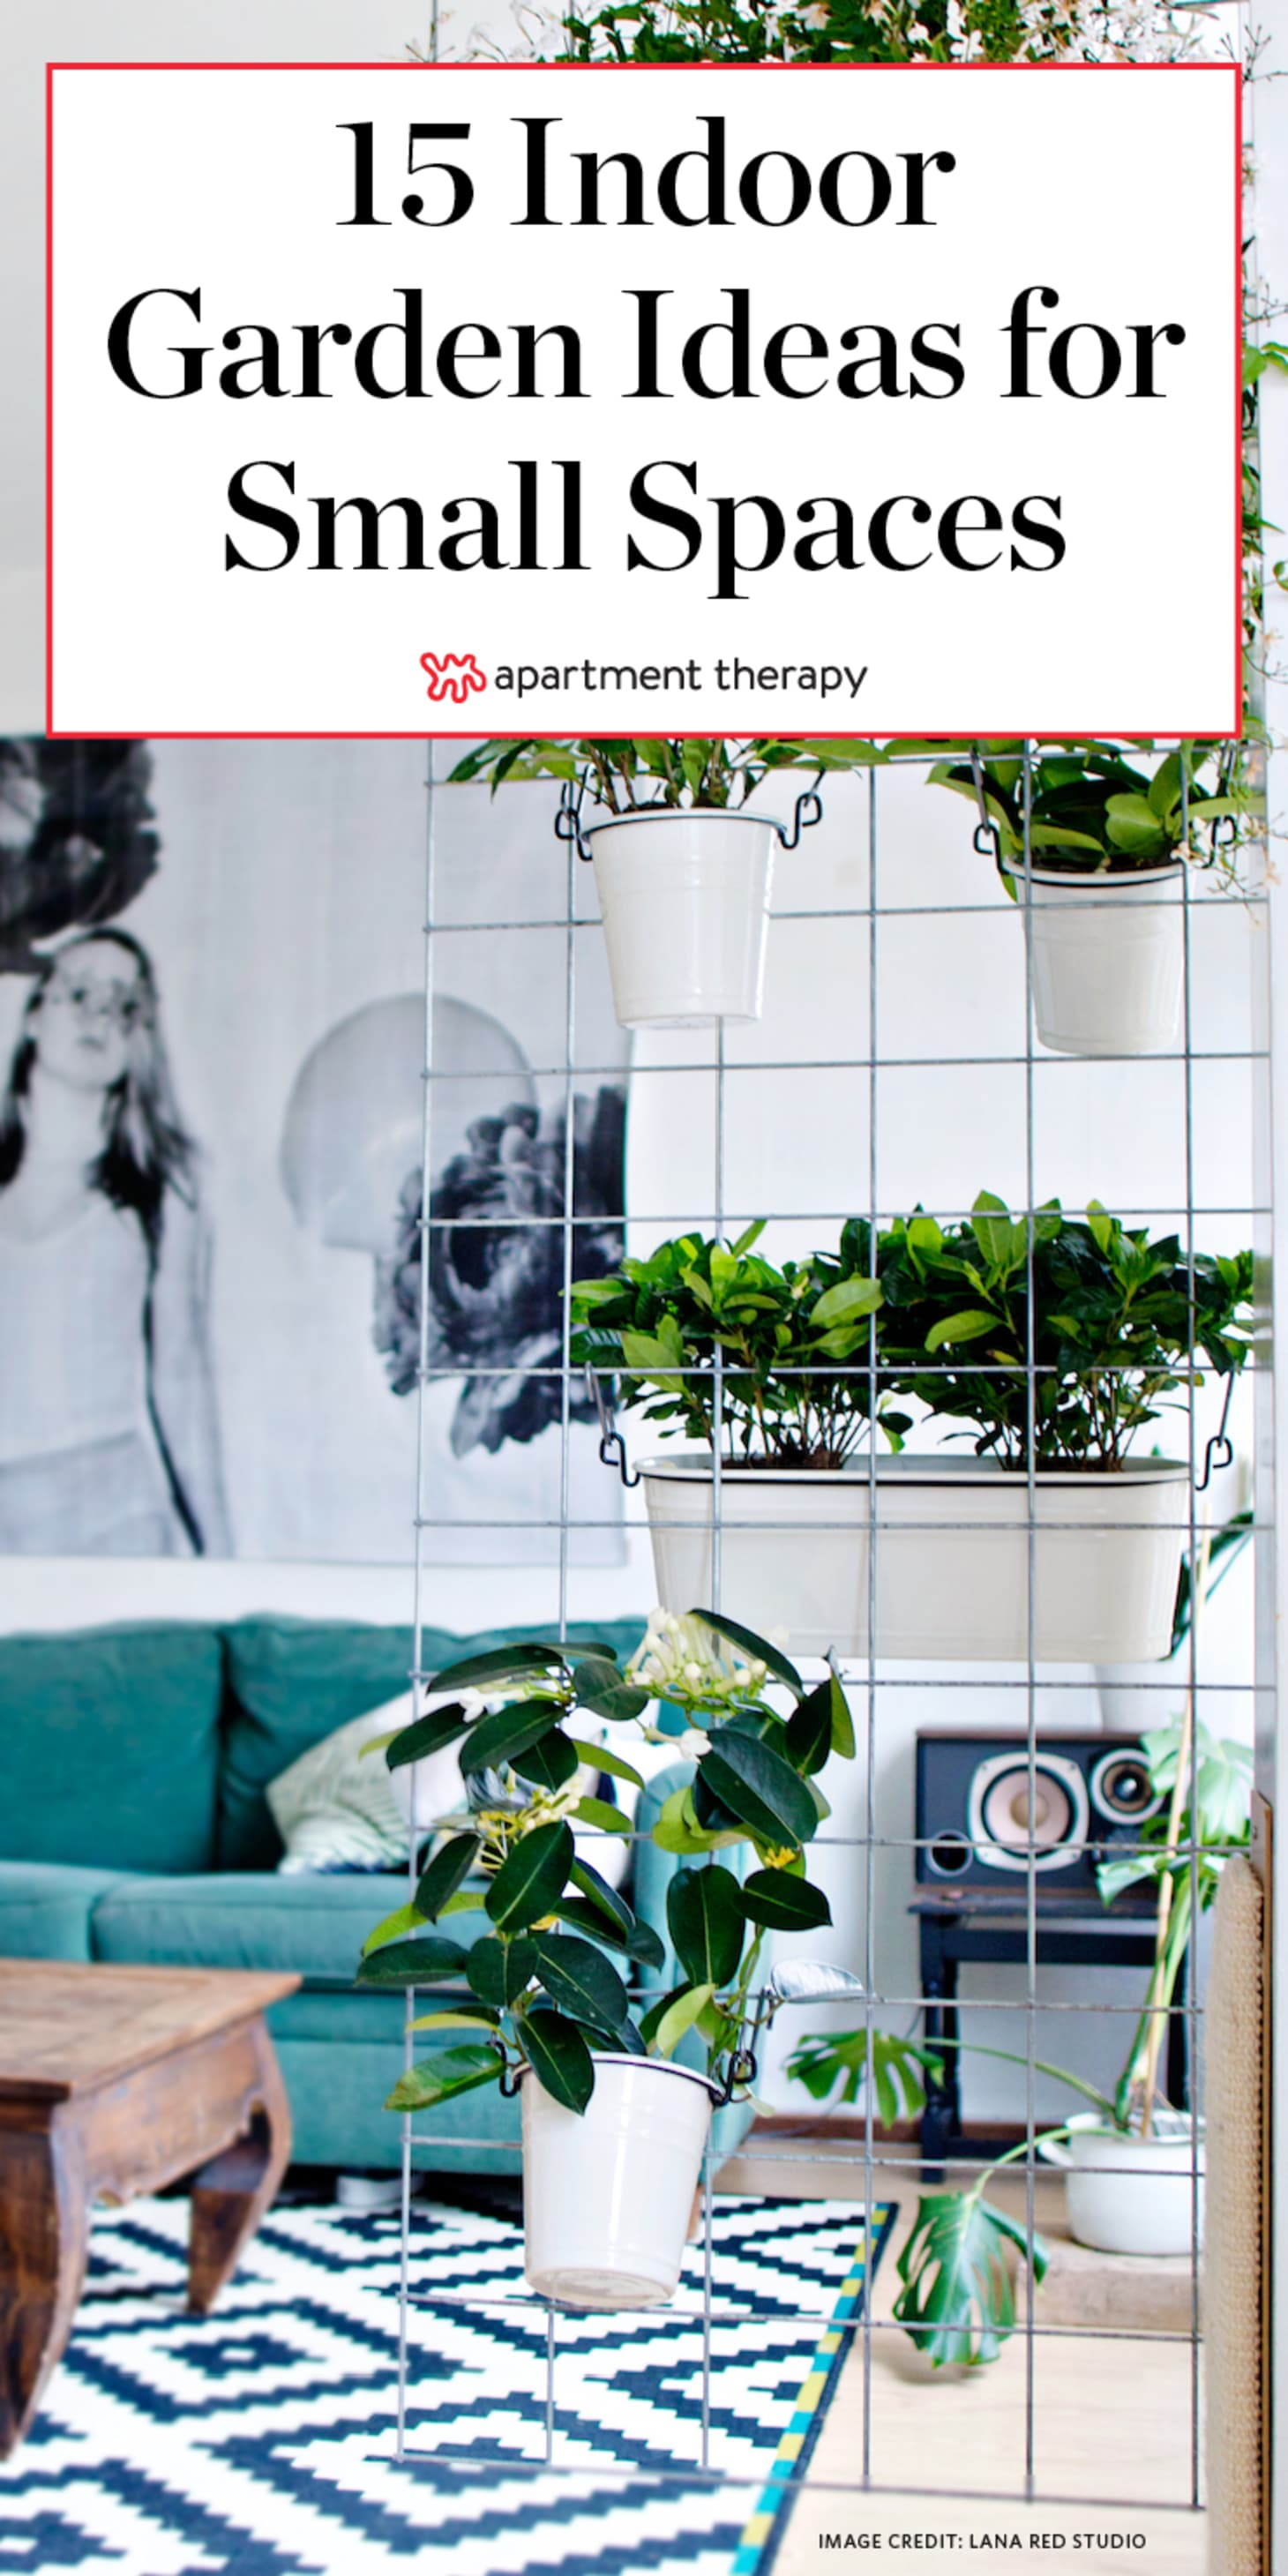 . 15 Indoor Garden Ideas for Wannabe Gardeners in Small Spaces